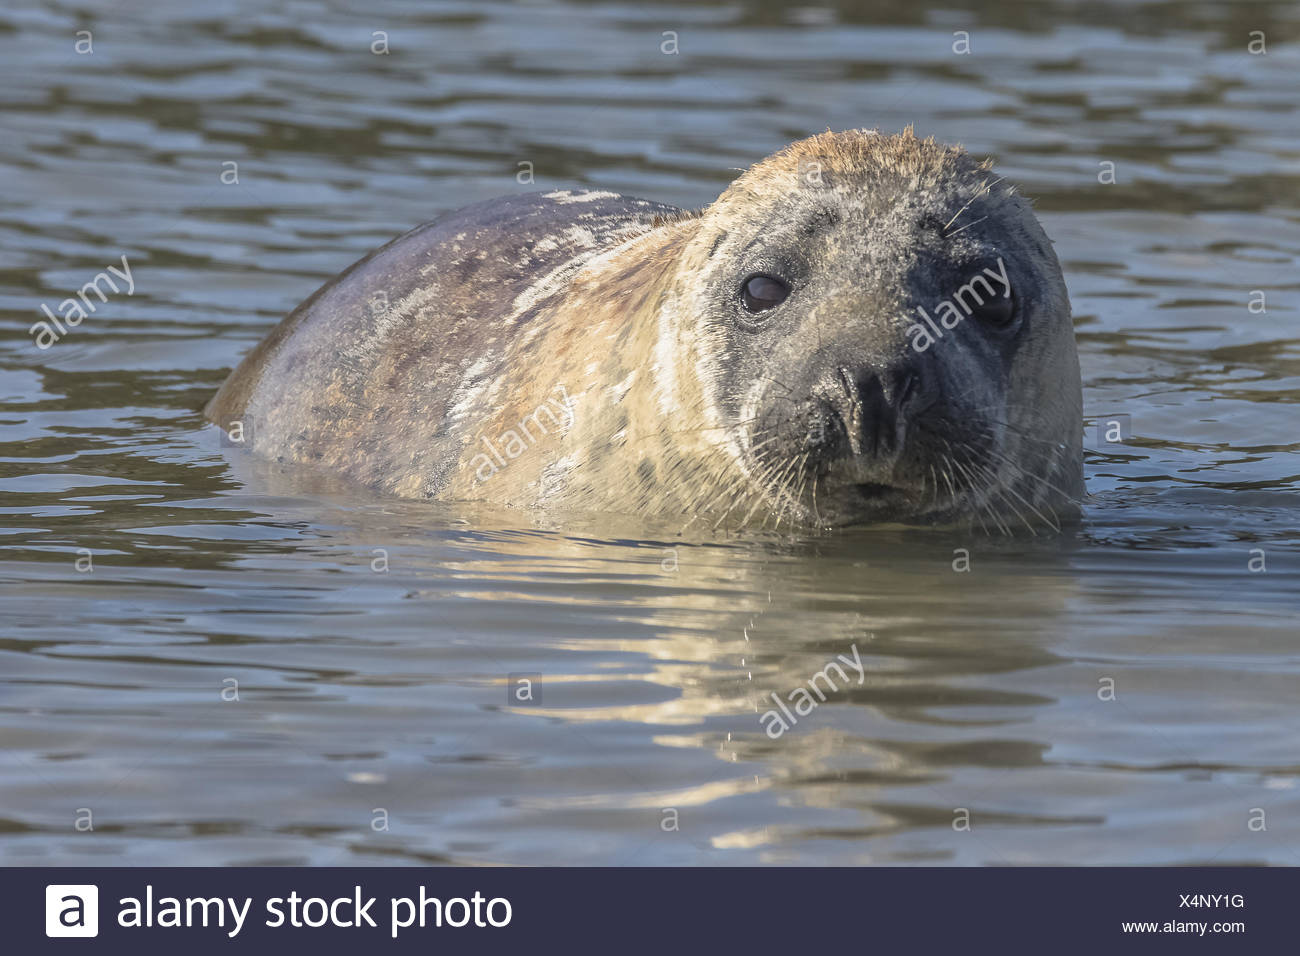 Young grey seal in the water - Stock Image